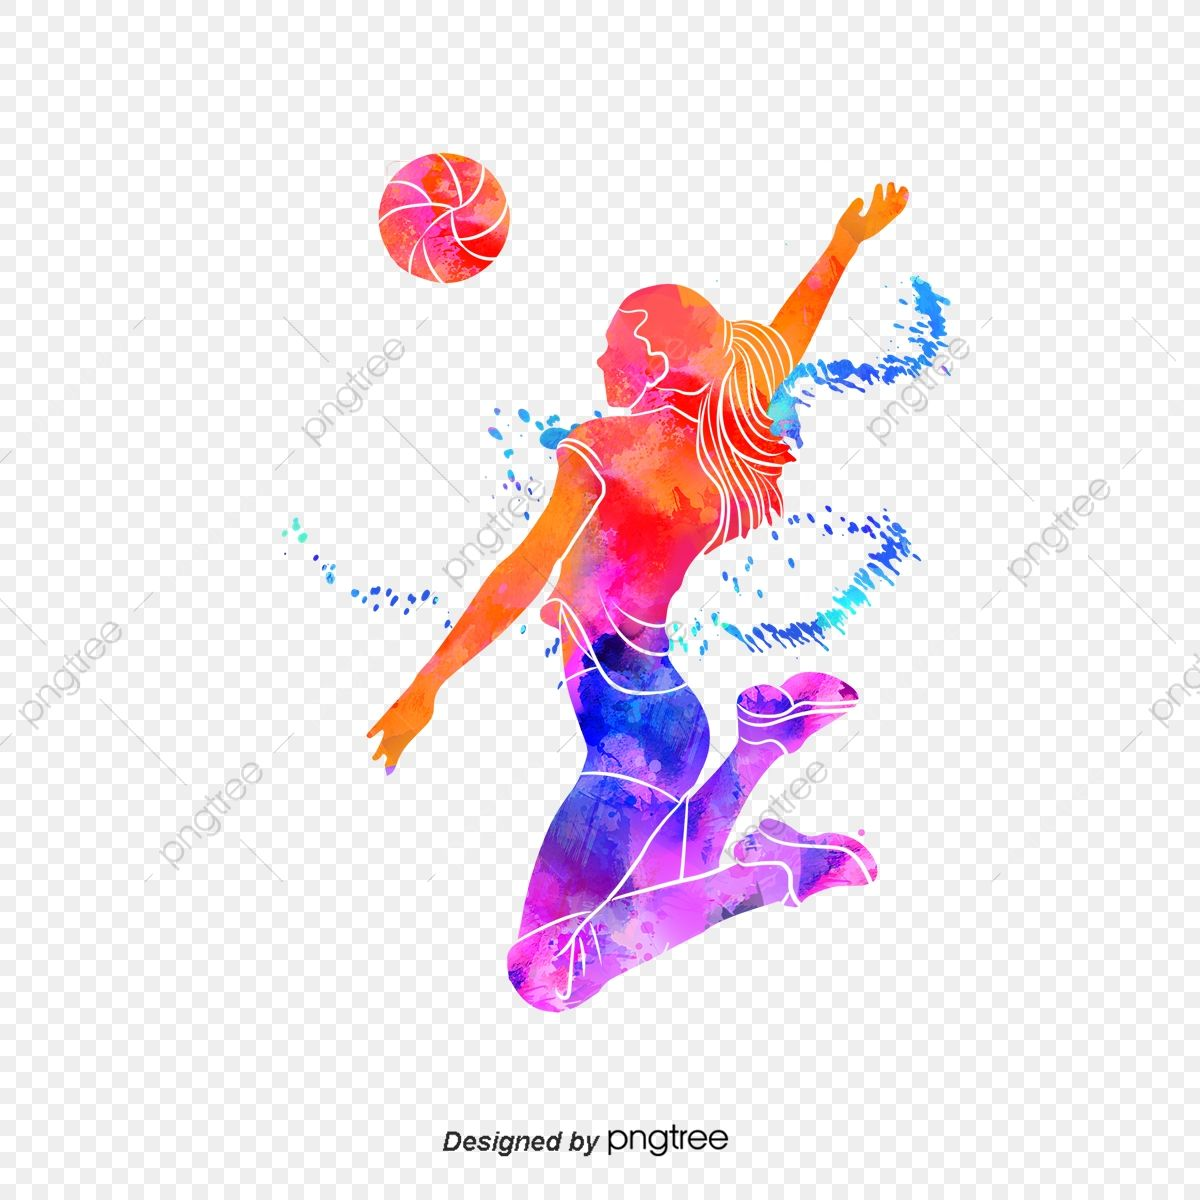 Download This Silhouettes Of Creative Volleyball Players Multicolored Sports Bodybuilding Png Clipart Image In 2020 Volleyball Players Sports Logo Design Volleyball